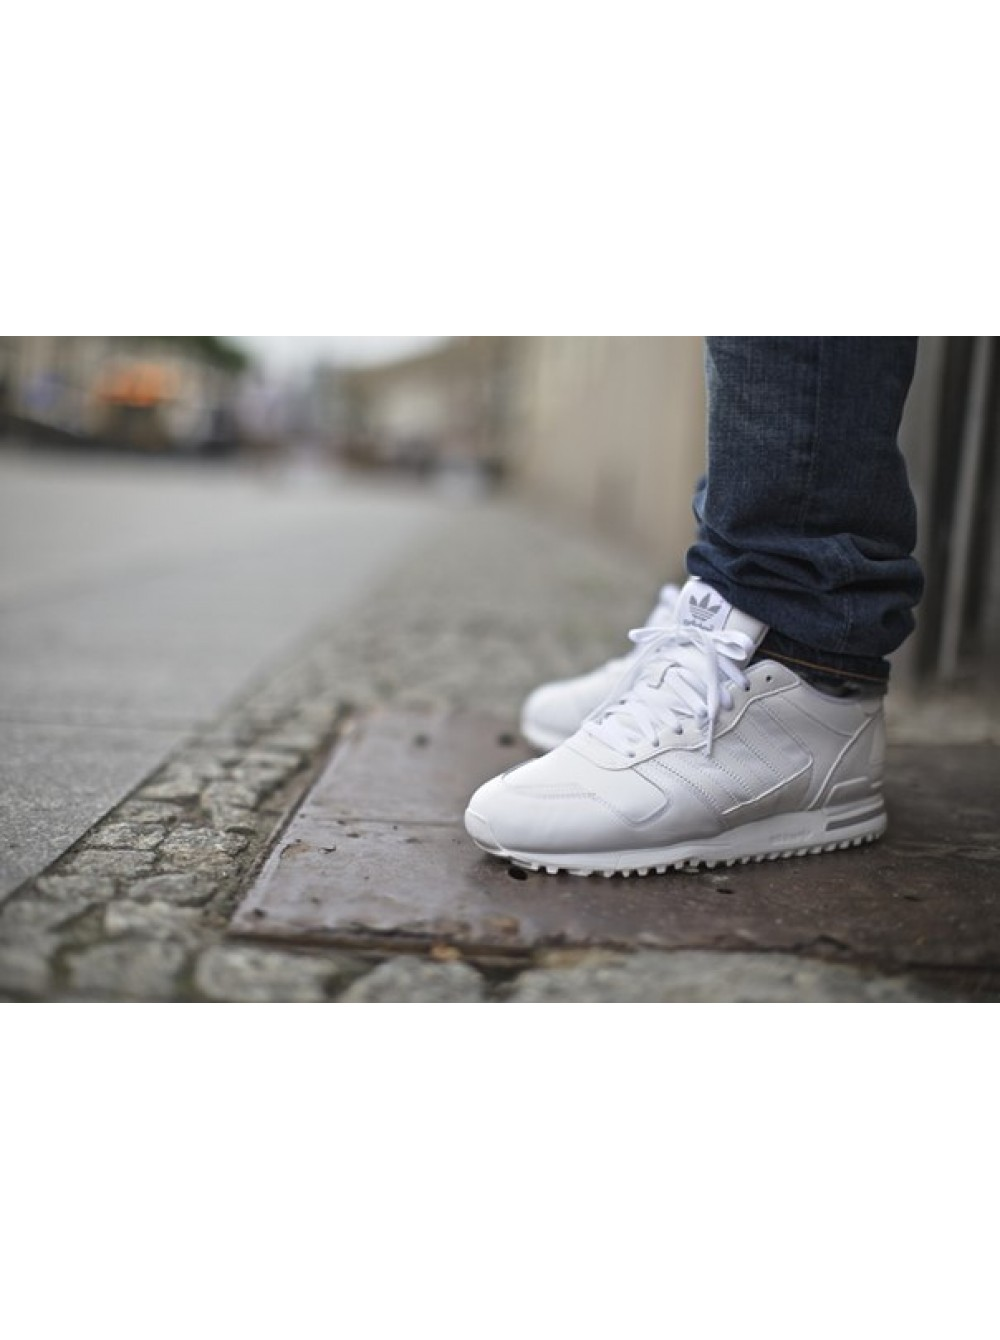 098728dd59c60 Adidas ZX 700 Leather White (Женские)